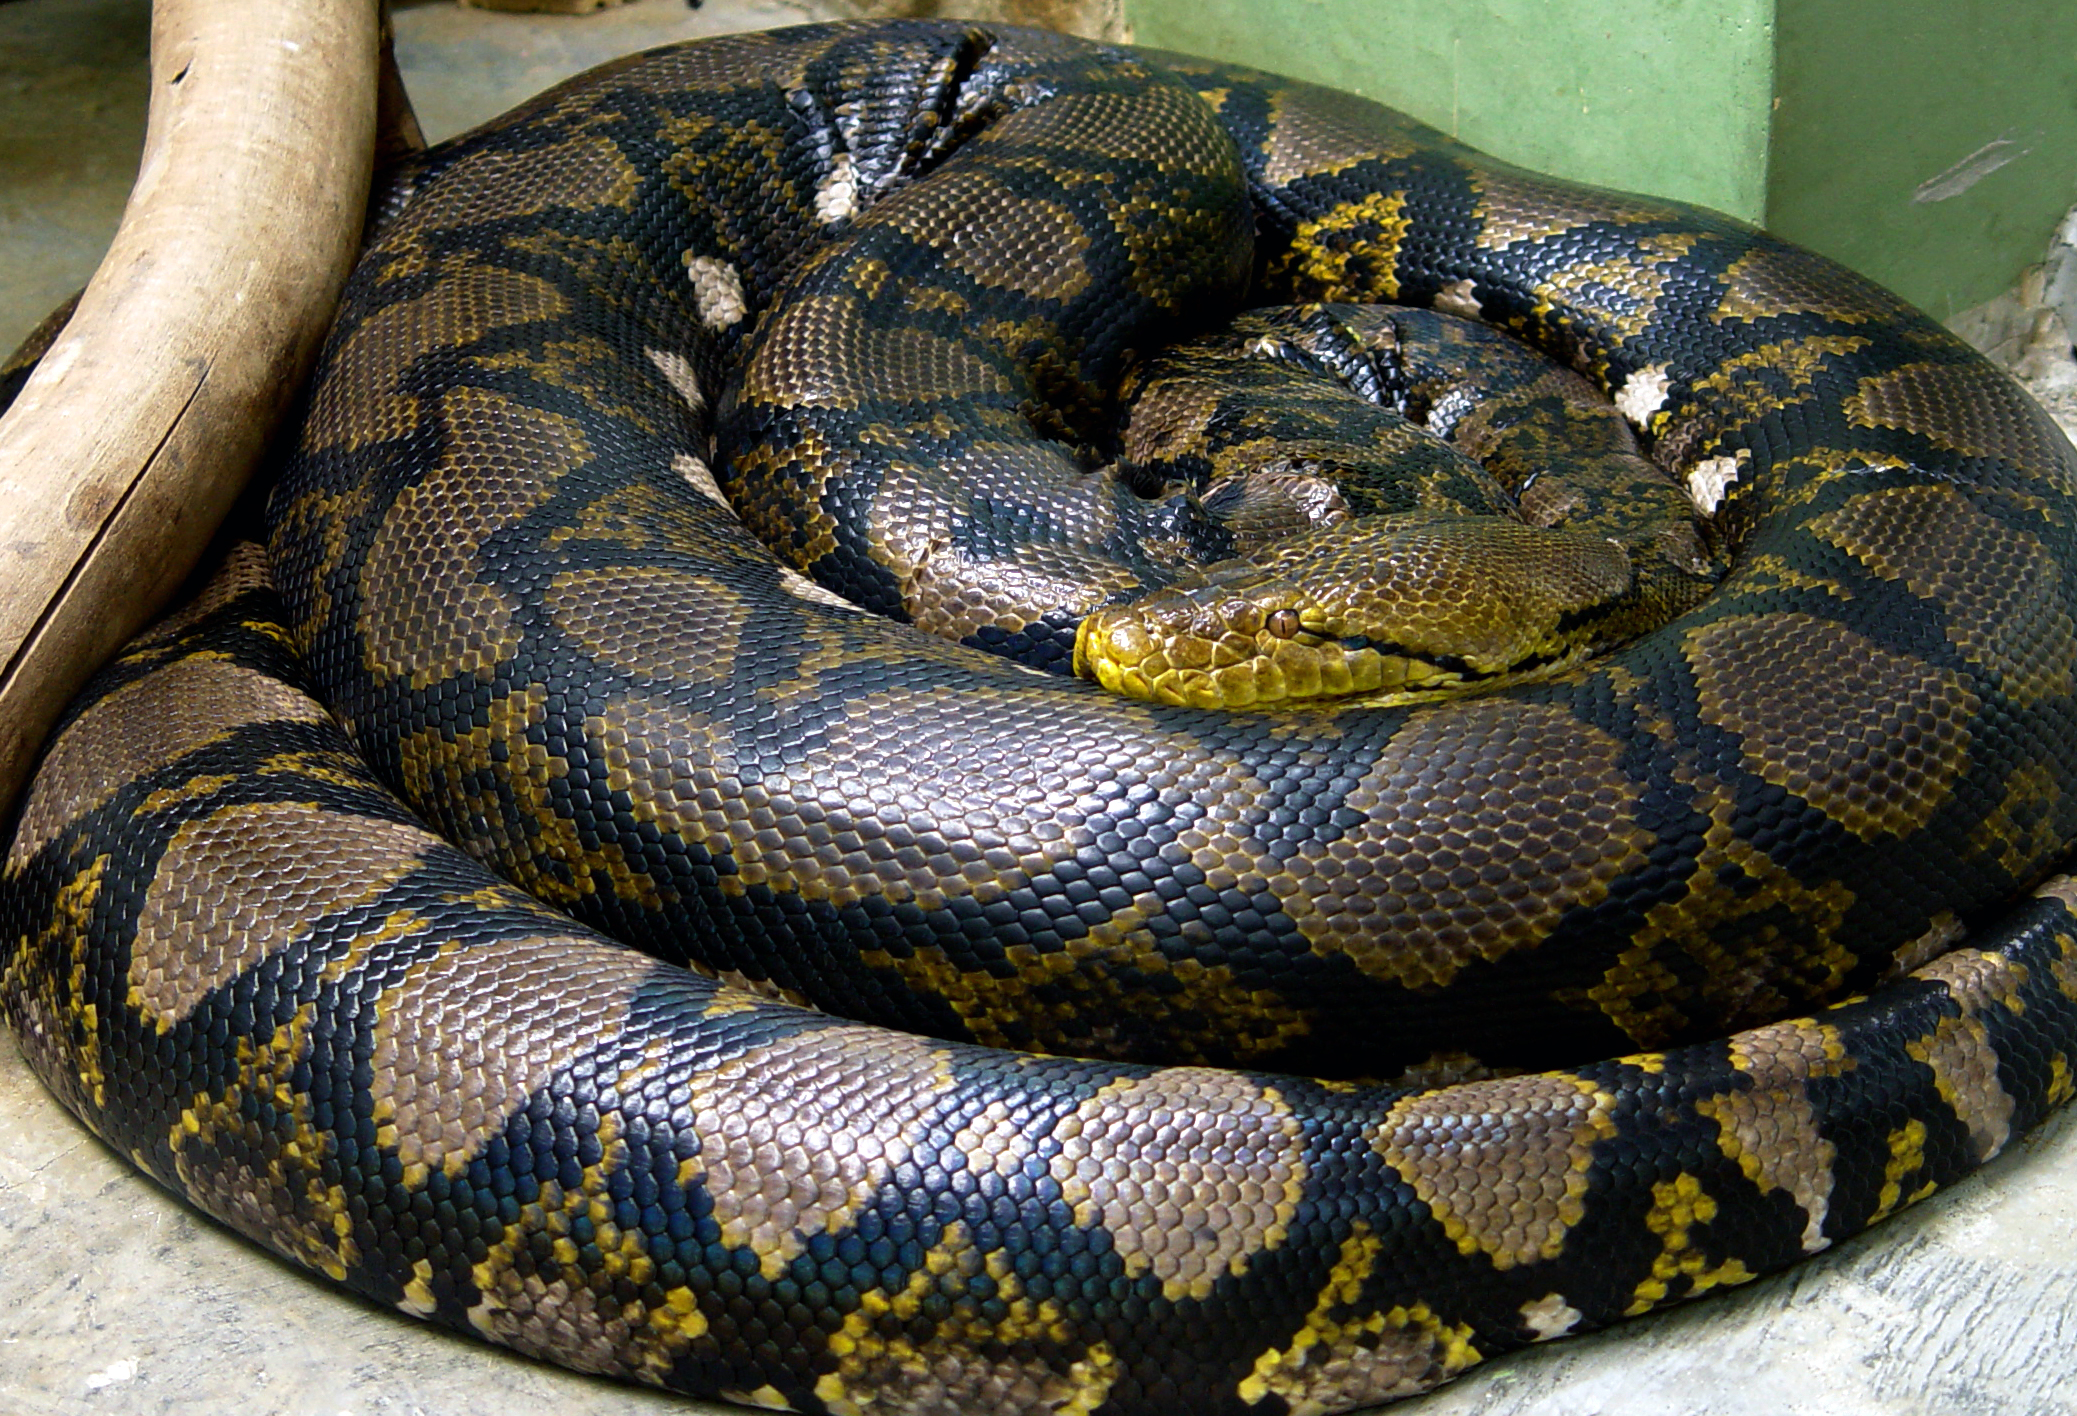 Reticulated python - Wikipedia